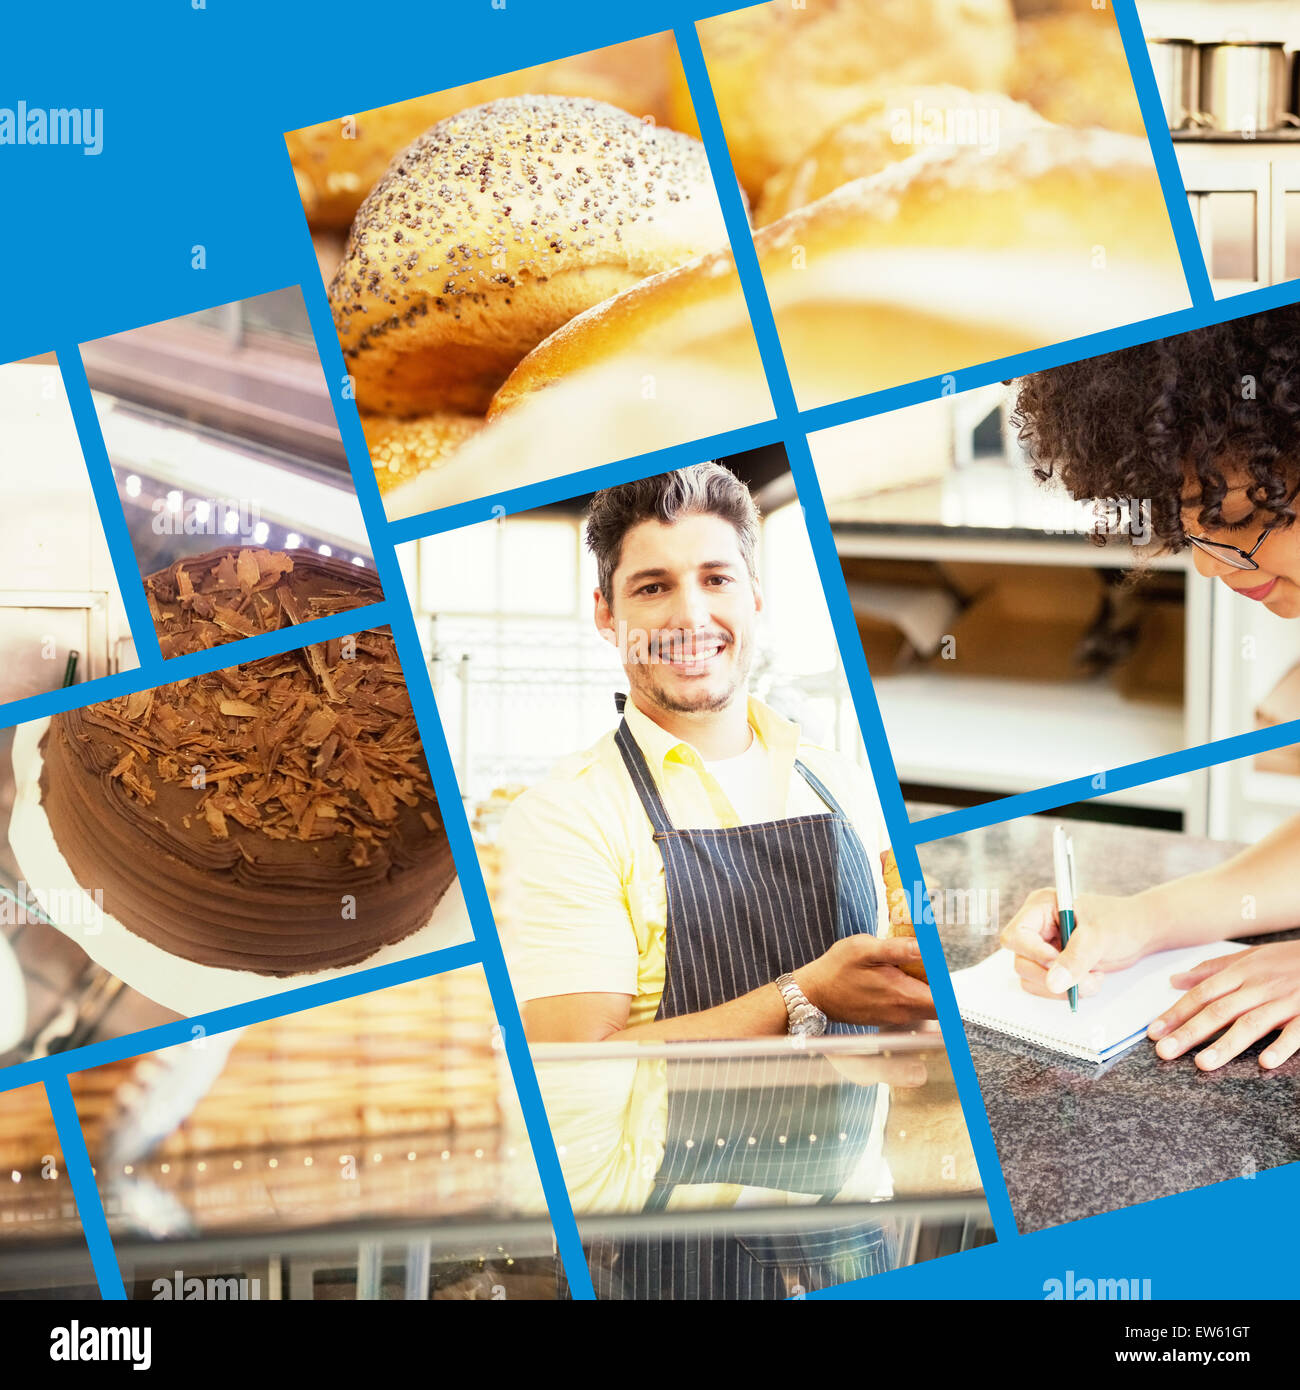 Composite image of close up of delicious breads freshly baked - Stock Image